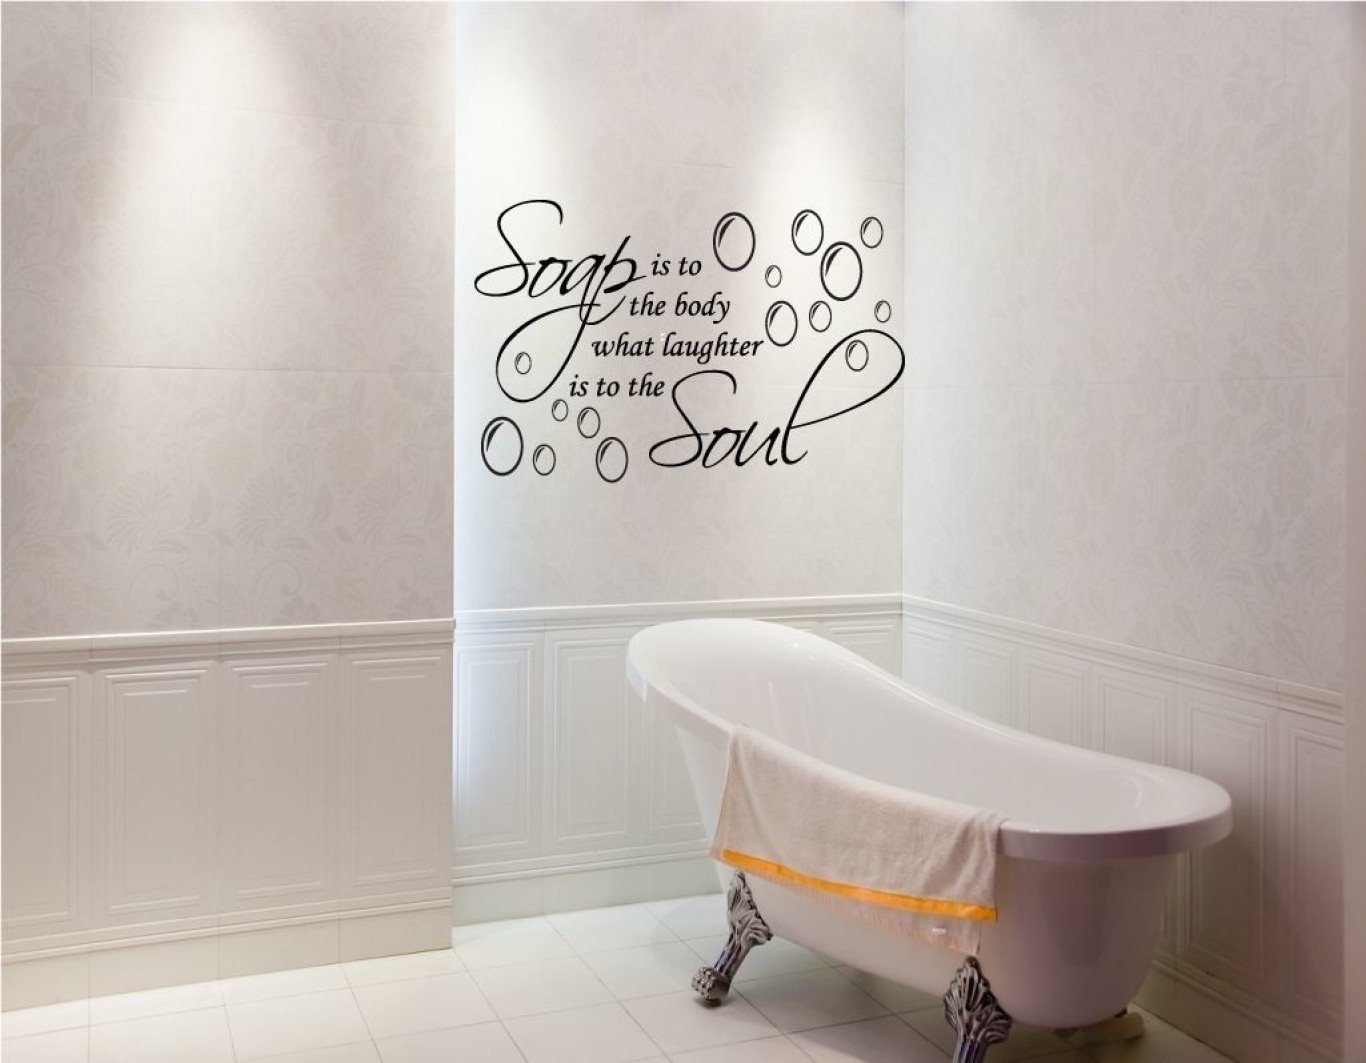 Bathroom Wall Decor In Most Recently Released Wall Accents For Bathroom (View 9 of 15)